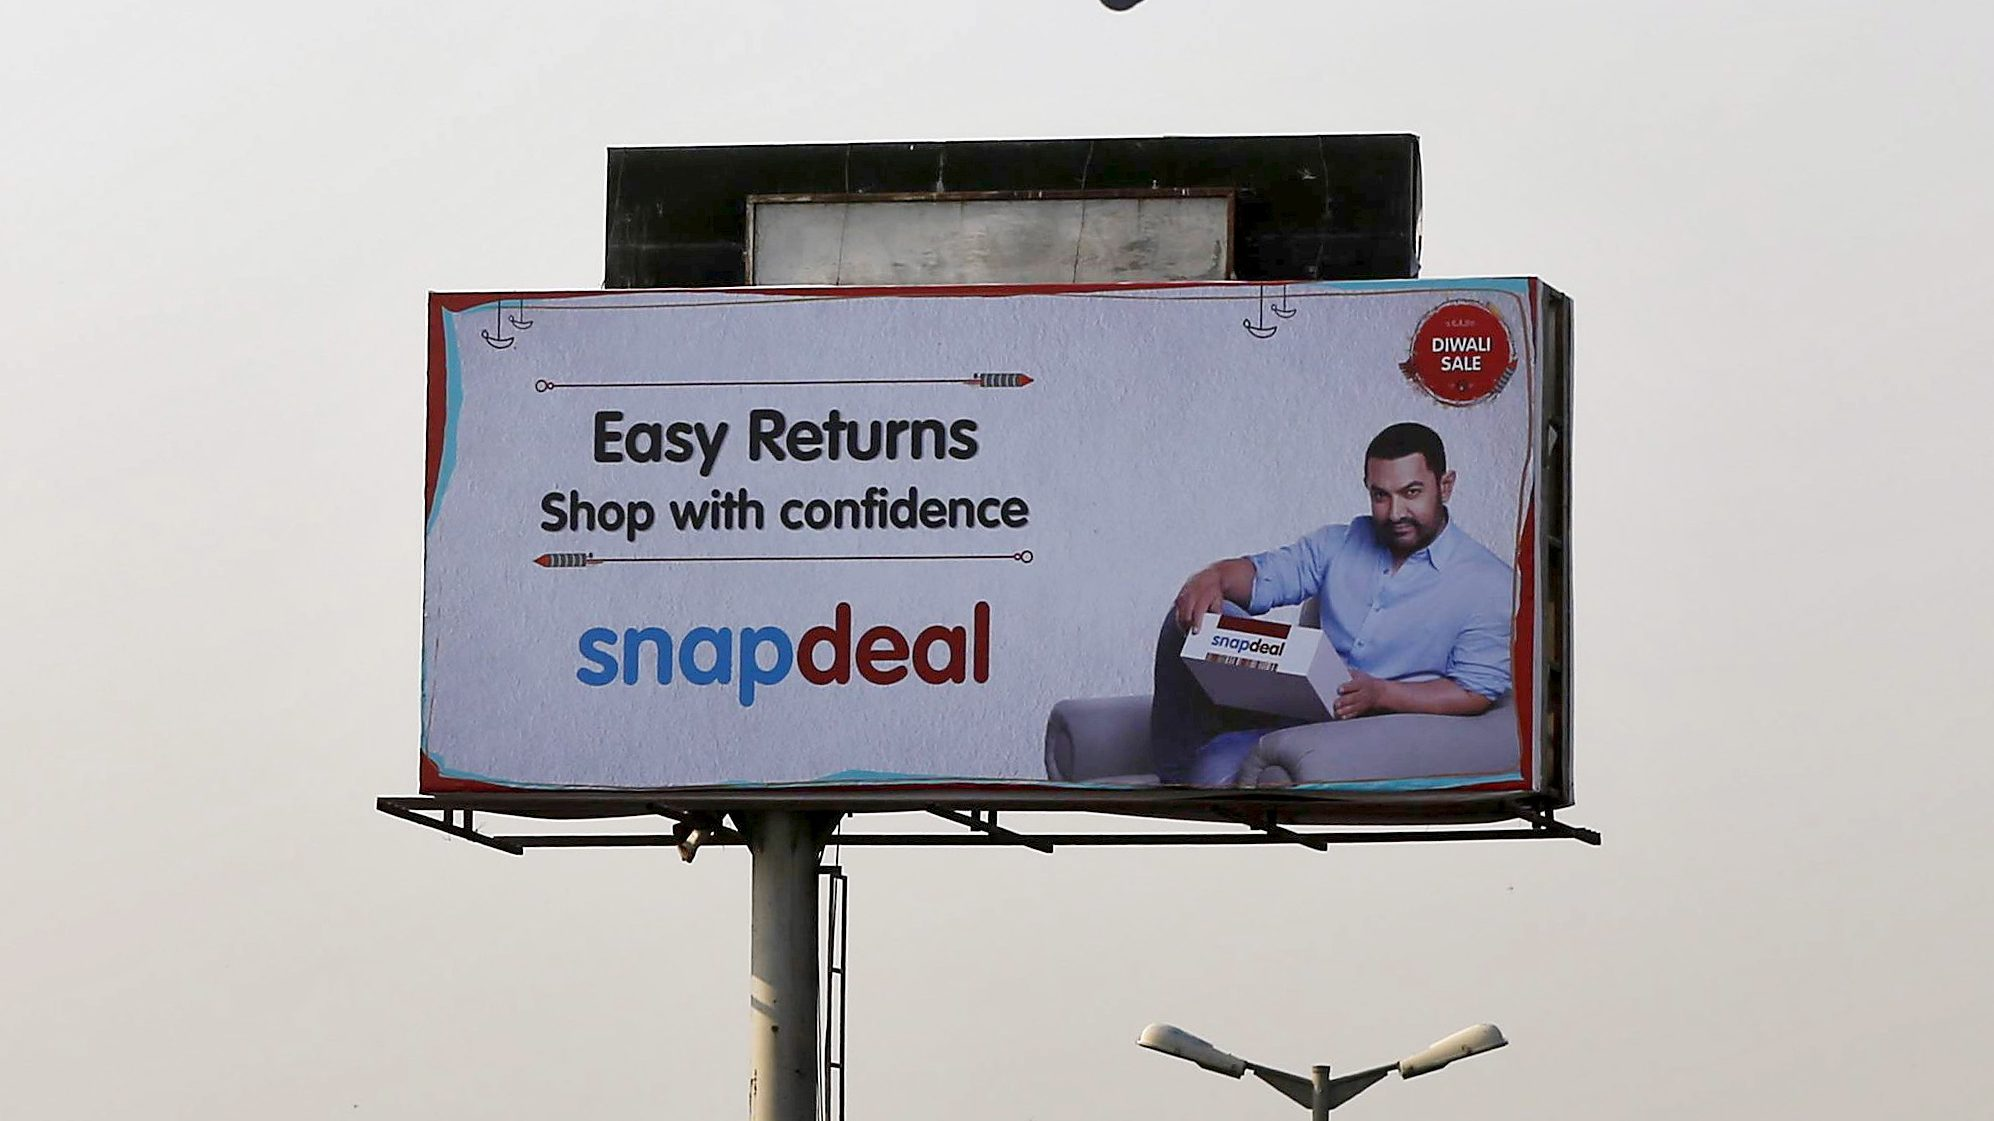 An IndiGo Airlines aircraft flies above an advertisement of Indian online marketplace Snapdeal featuring Bollywood actor Aamir Khan, in Mumbai, India, October 16, 2015. Amazon.com Inc could emerge as the biggest winner from one of India's most important festive - and shopping - seasons, after the e-tailer offered steep discounts, swift delivery and even gold bars to grab market share. The month-long festive season, which began on Monday, culminates in Diwali, or the Festival of Lights, but the first nine days are considered an especially auspicious time to make big purchases. Analysts say e-commerce firms in India could make as much as a quarter of their annual sales during this period, with the global experience, logistics network and deep pockets of Amazon putting it in a good position to grab customers from local market leader Flipkart and smaller firm Snapdeal. REUTERS/Shailesh Andrade - GF10000246866